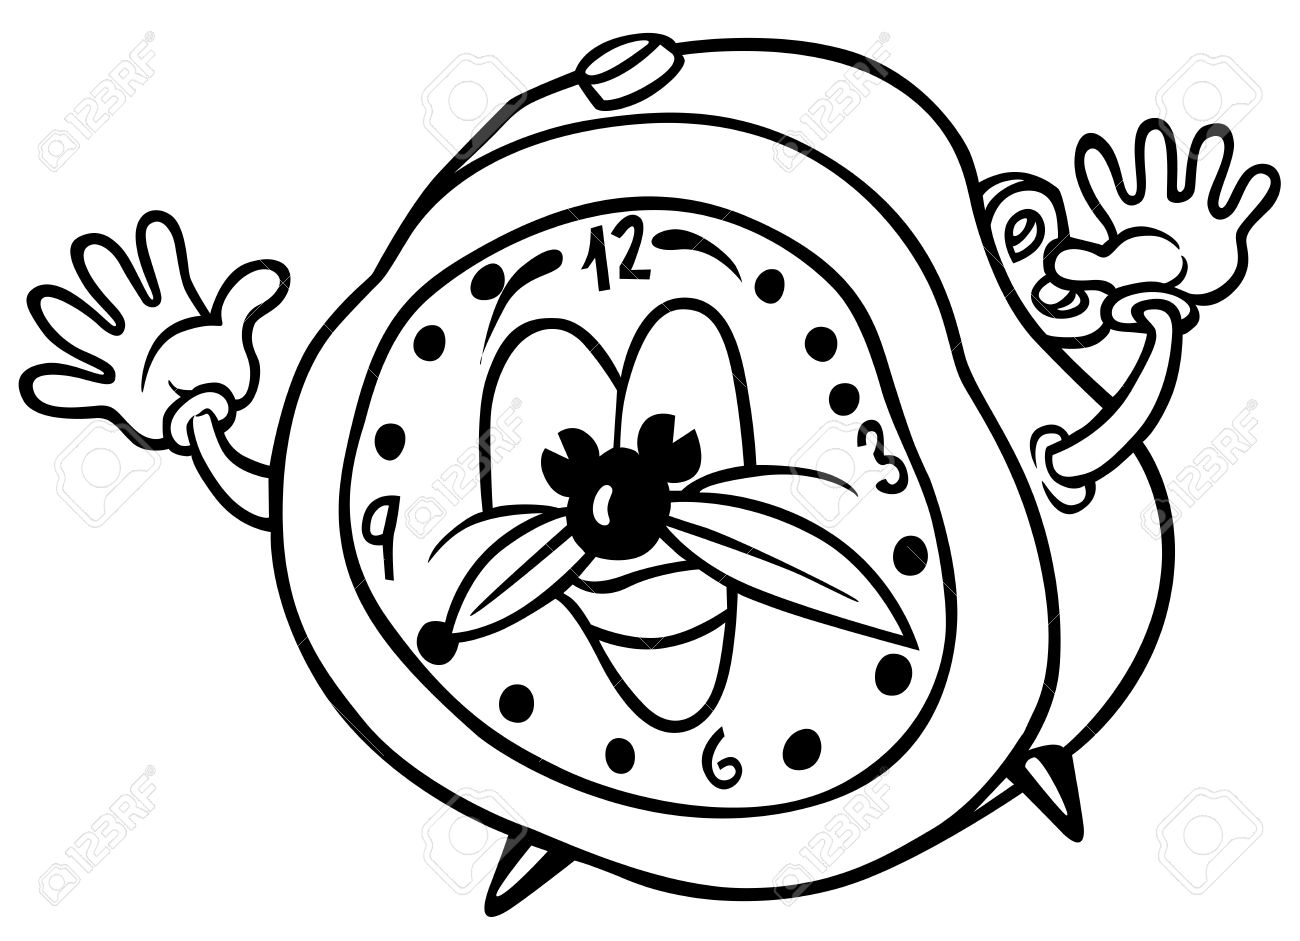 black and white alarm clock clipart #14